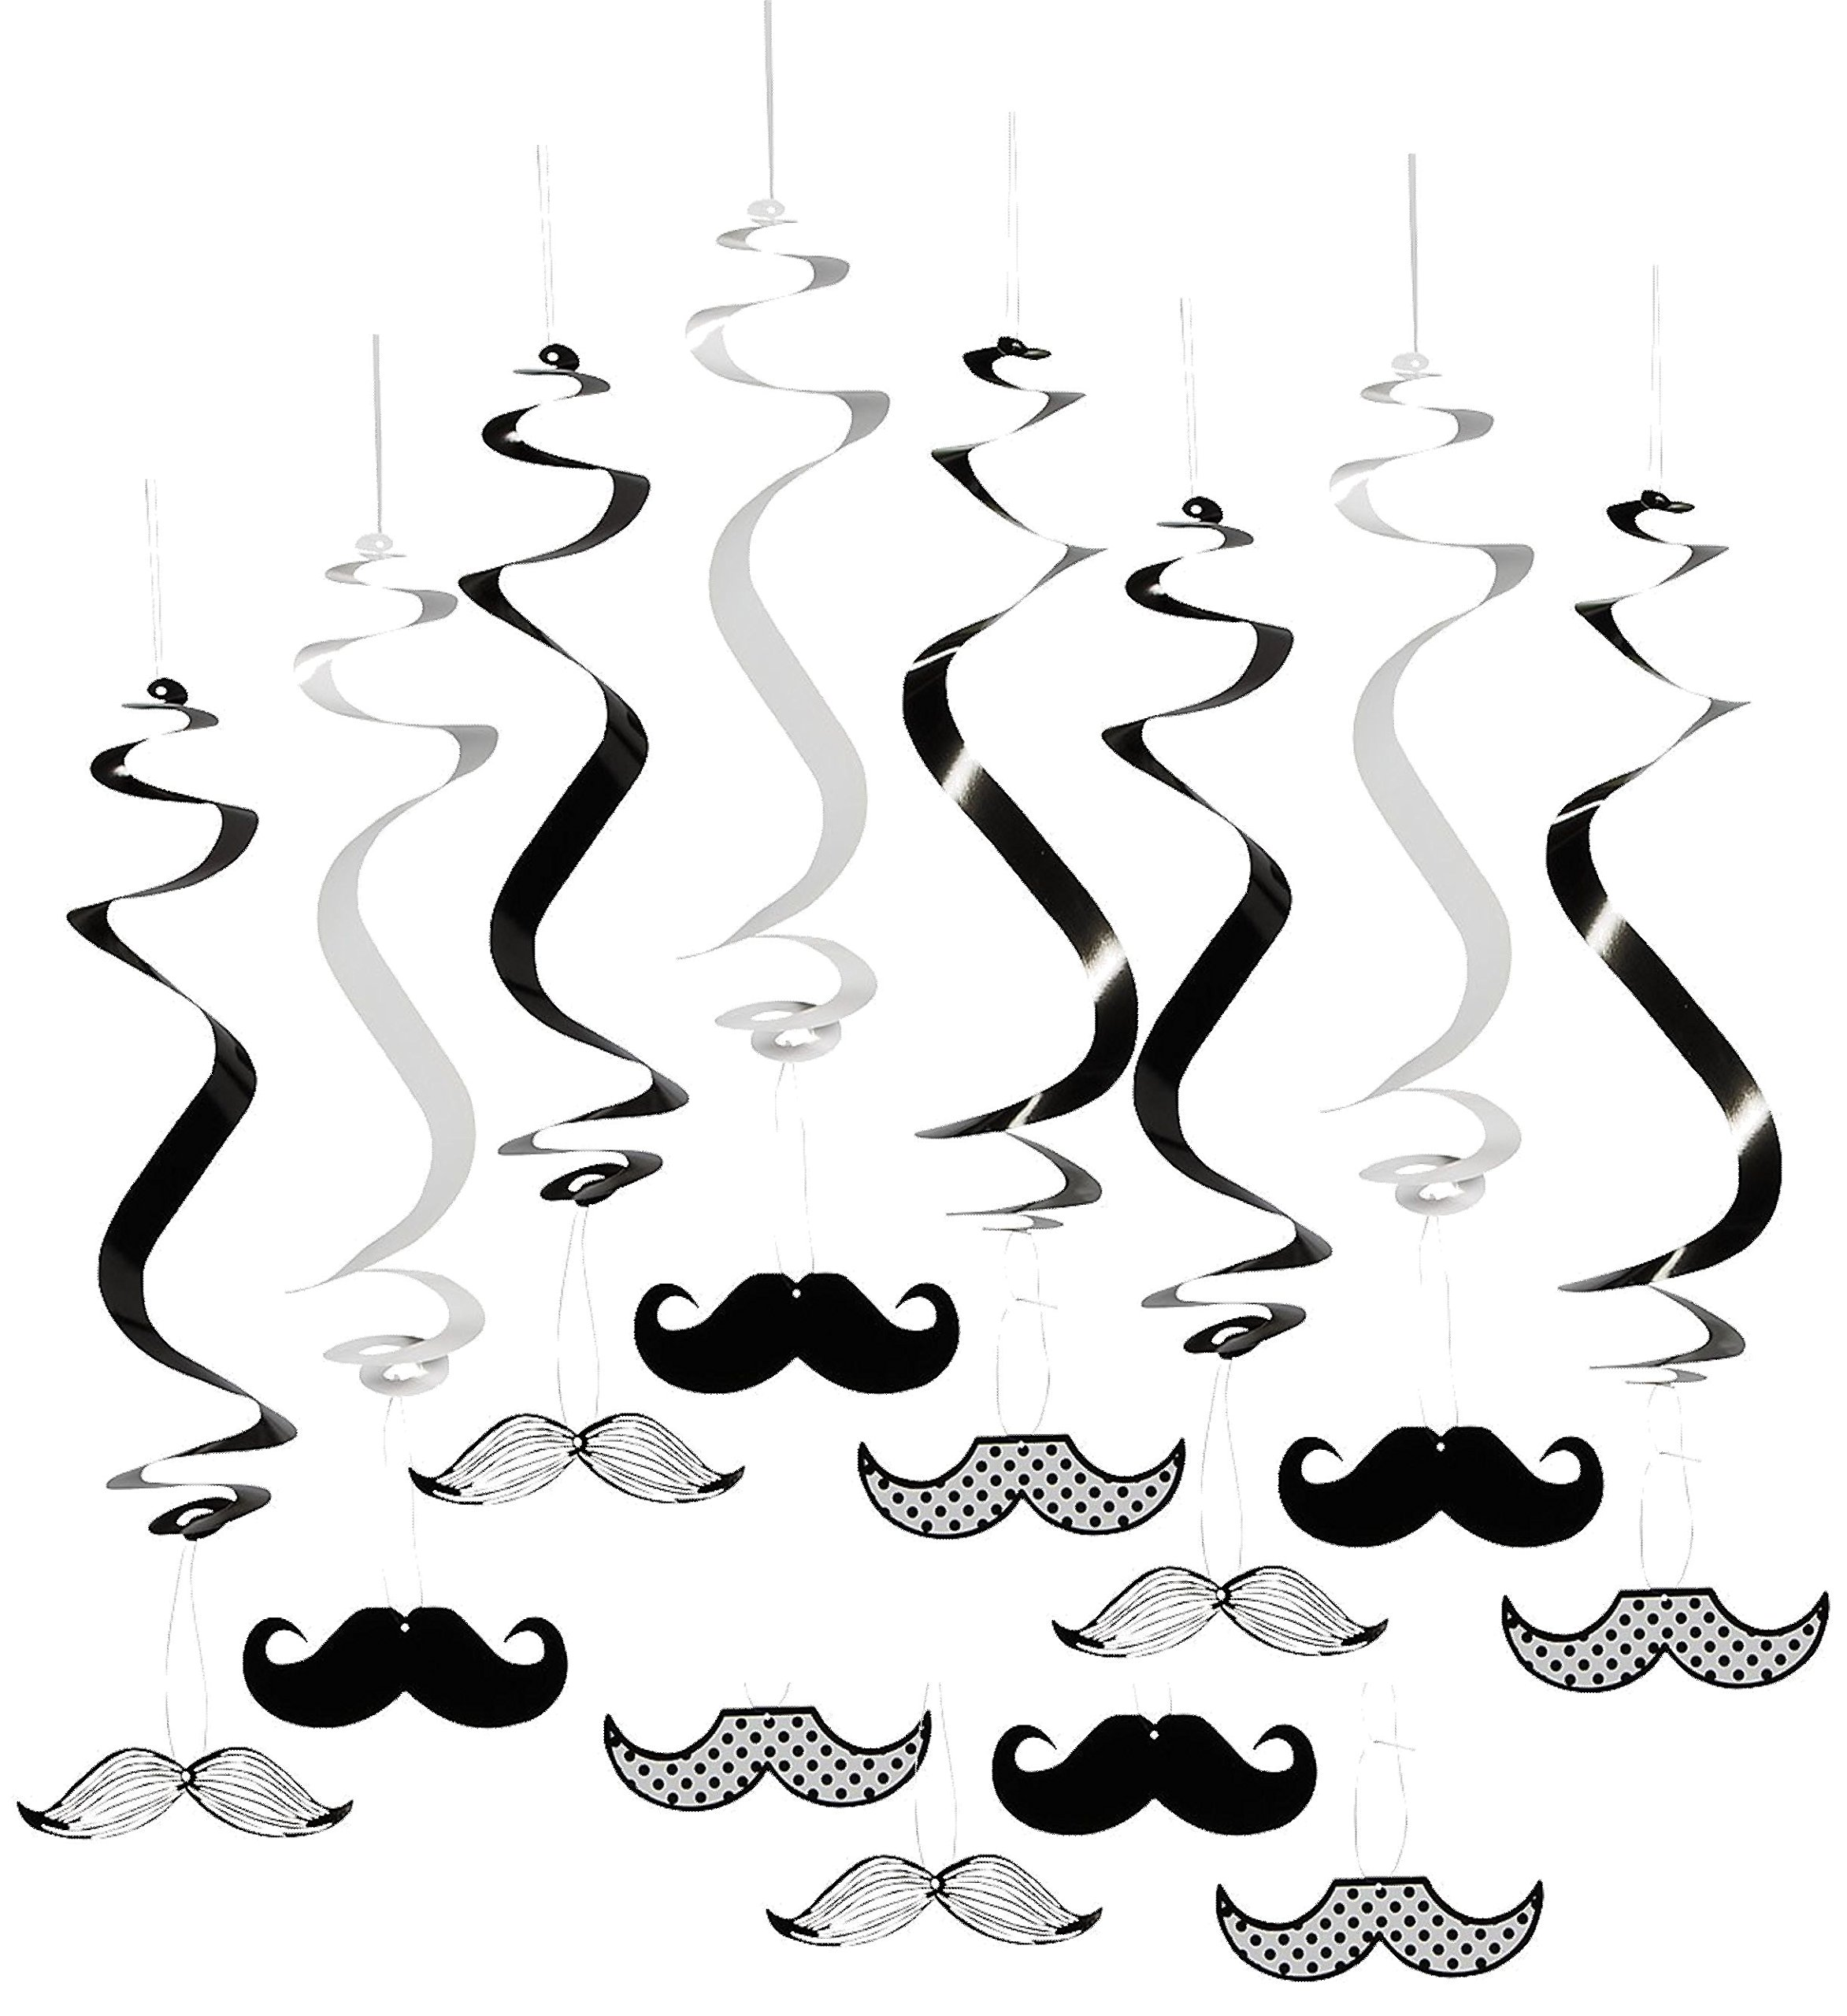 Mustache Baby Shower Birthday Party Supply Bundle Bulk Pack Includes 12 Swirl Decorations, 50 Mustache Food Picks, 12 Latex Balloons, and 1 Mustache Table Cover (BONUS! Matching Party Straw Pack) by Everyday Party Bundles (Image #5)